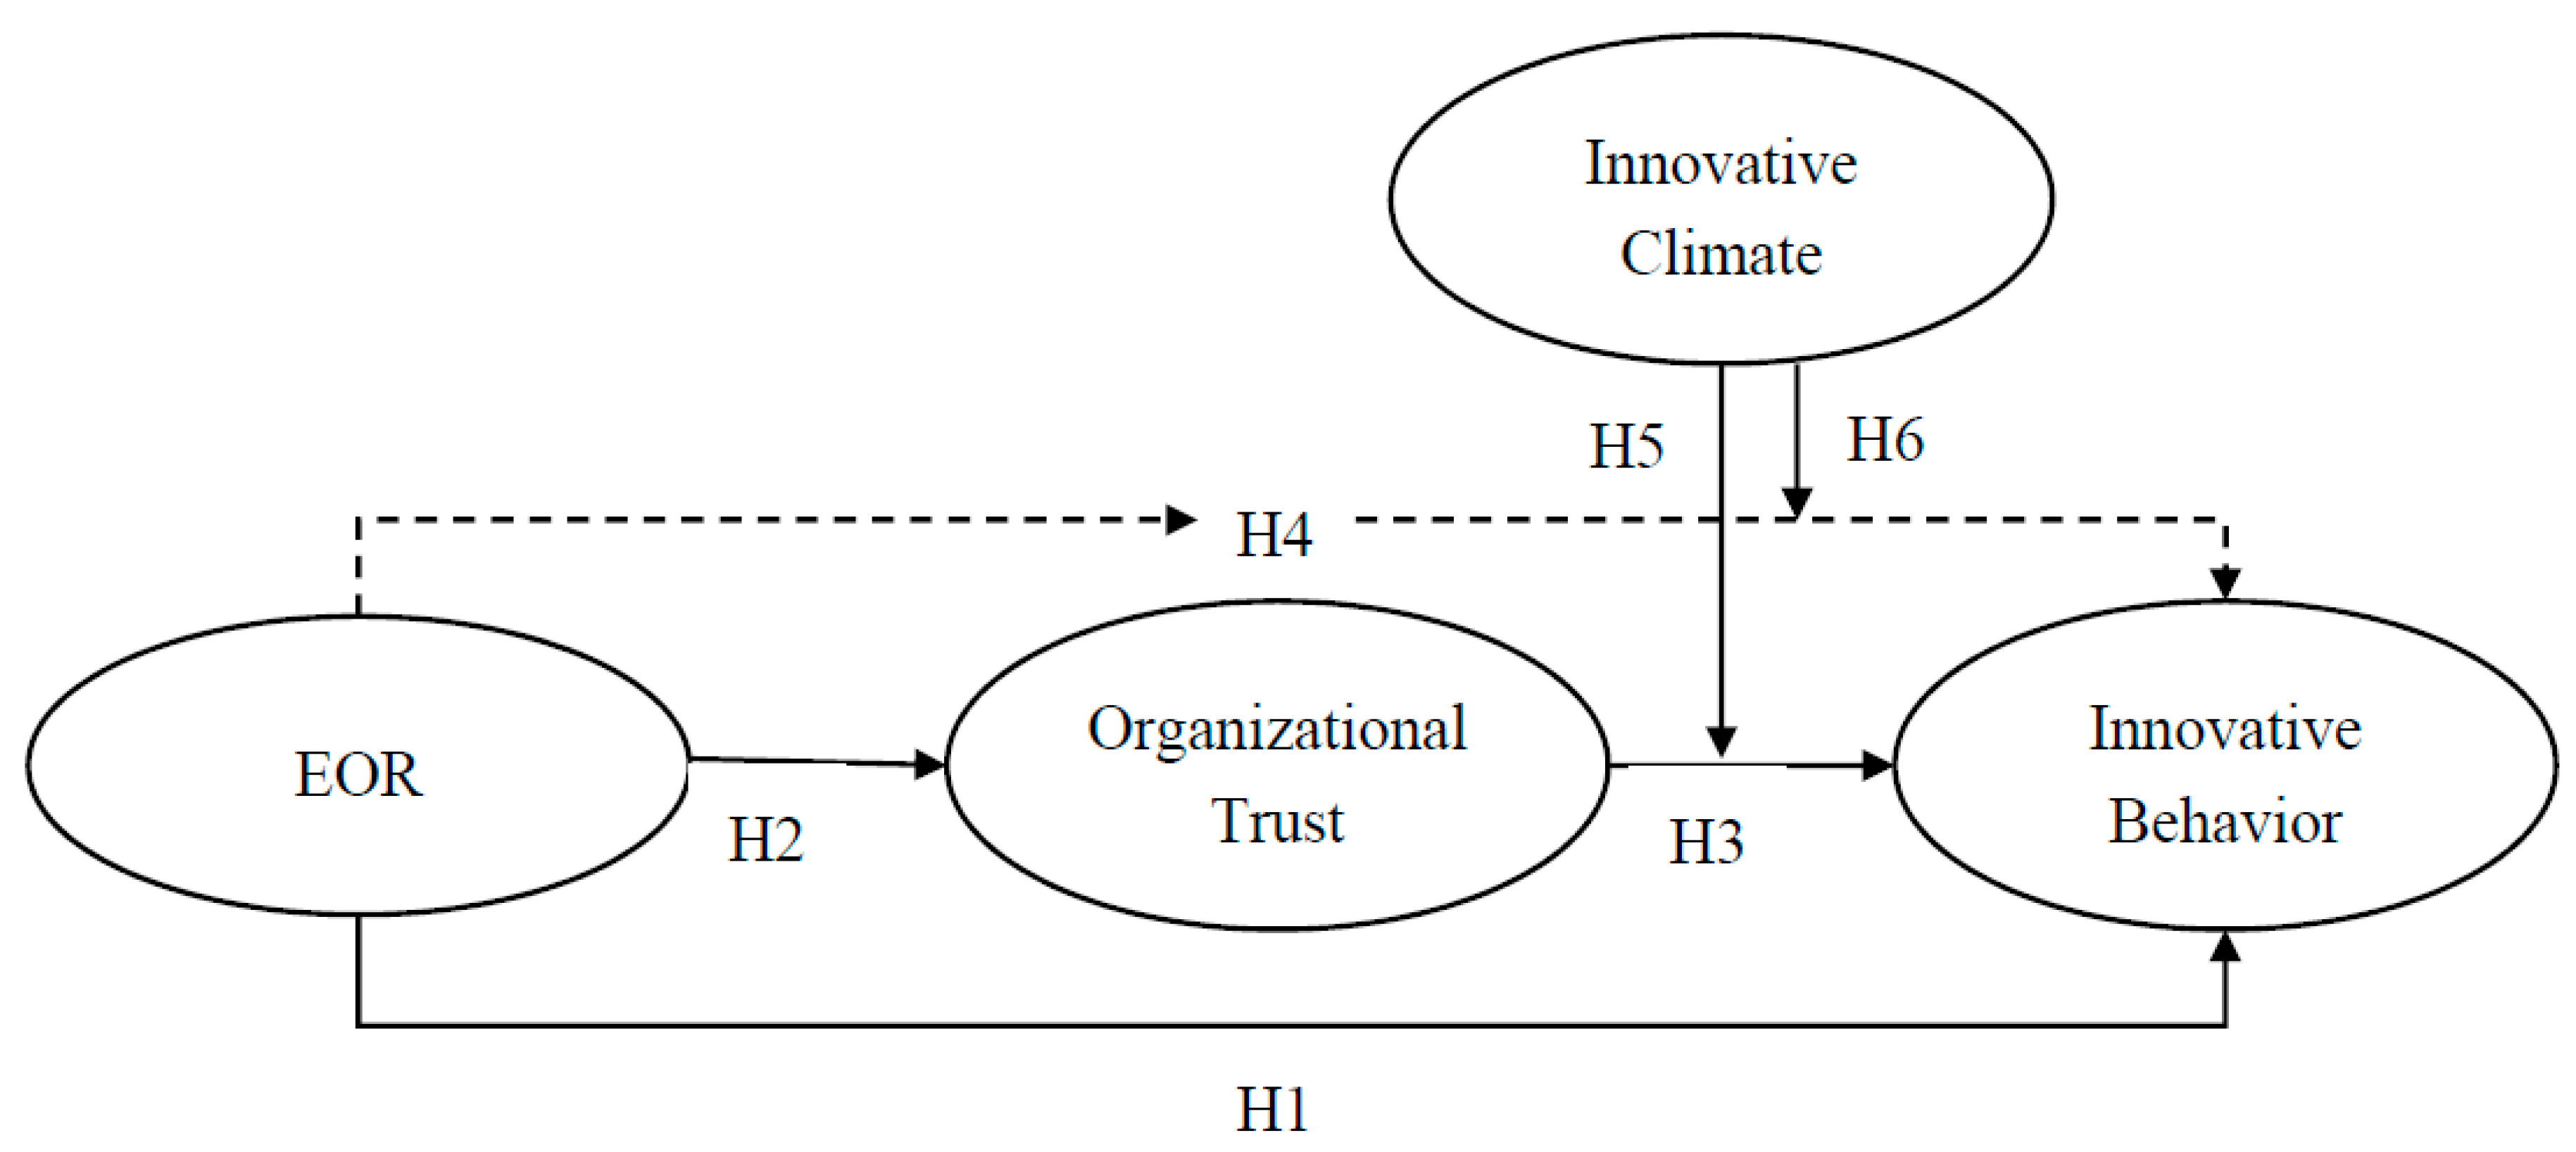 Sustainability Free Full Text An Empirical Study On The Organizational Trust Employee Organization Relationship And Innovative Behavior From The Integrated Perspective Of Social Exchange And Organizational Sustainability